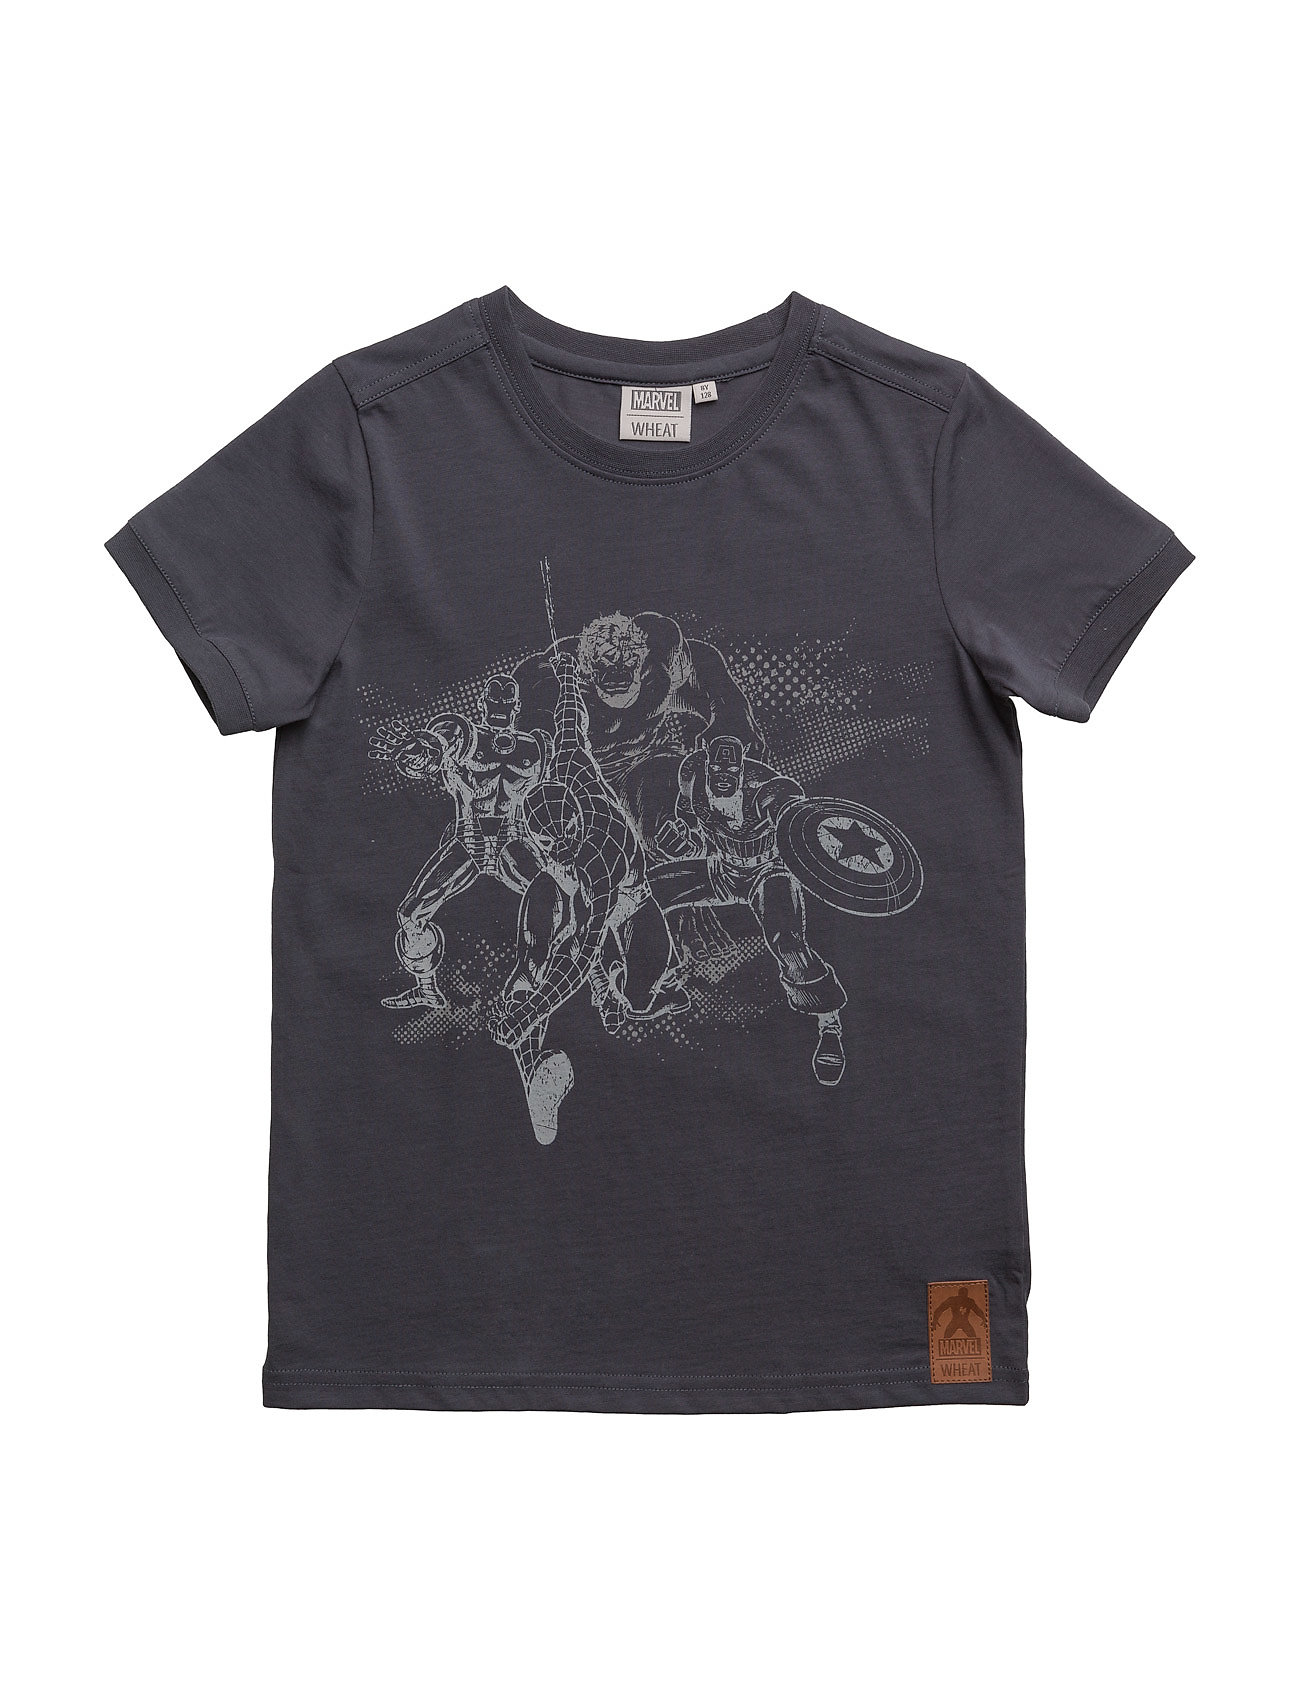 T-Shirt Avengers Disney by Wheat Kortærmede t-shirts til Børn i